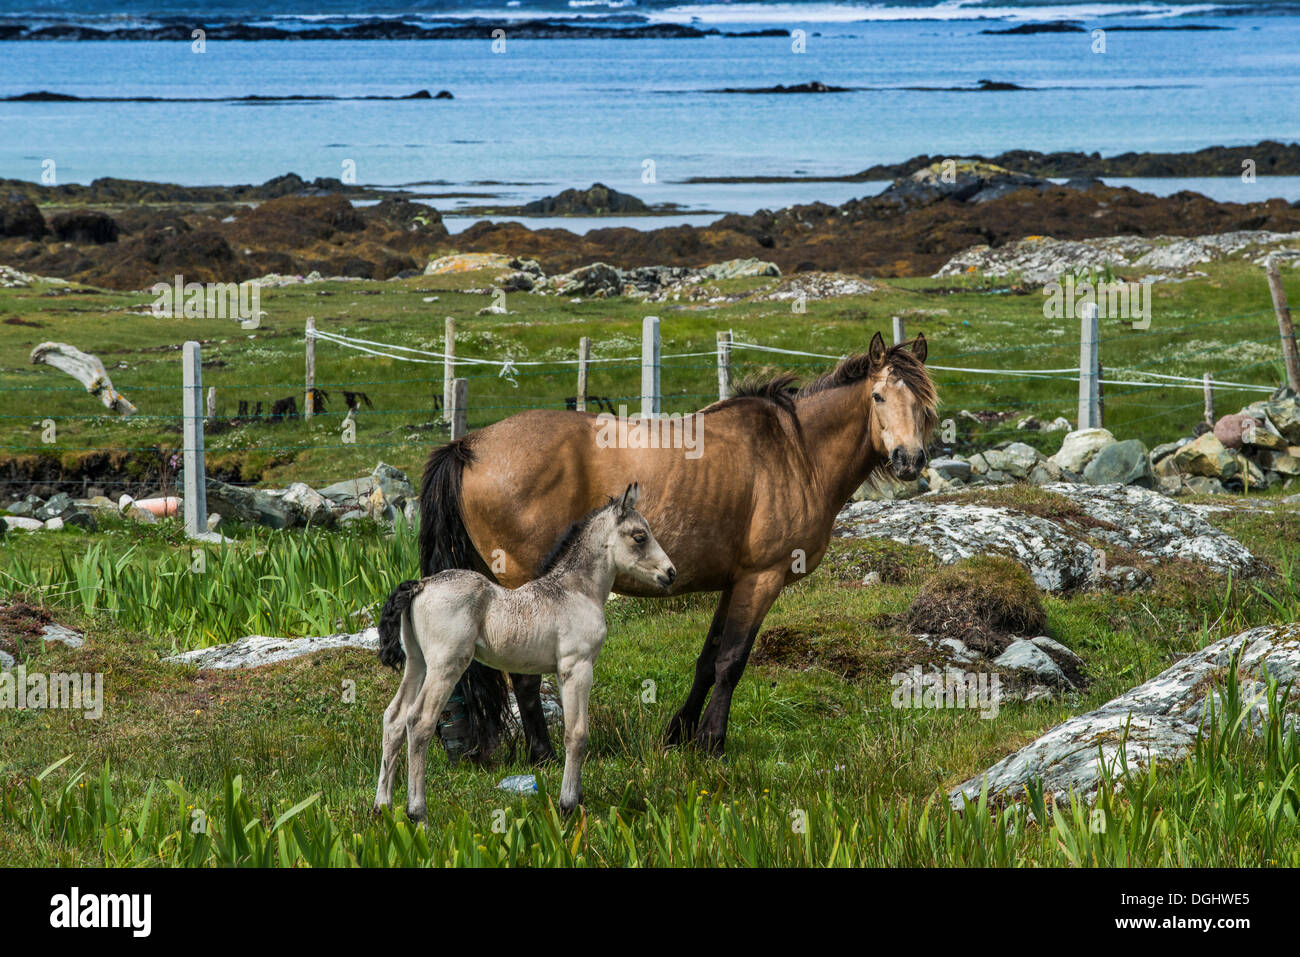 Mare with a foal, horses in a paddock on the coast, Connemara, Ireland, Europe - Stock Image